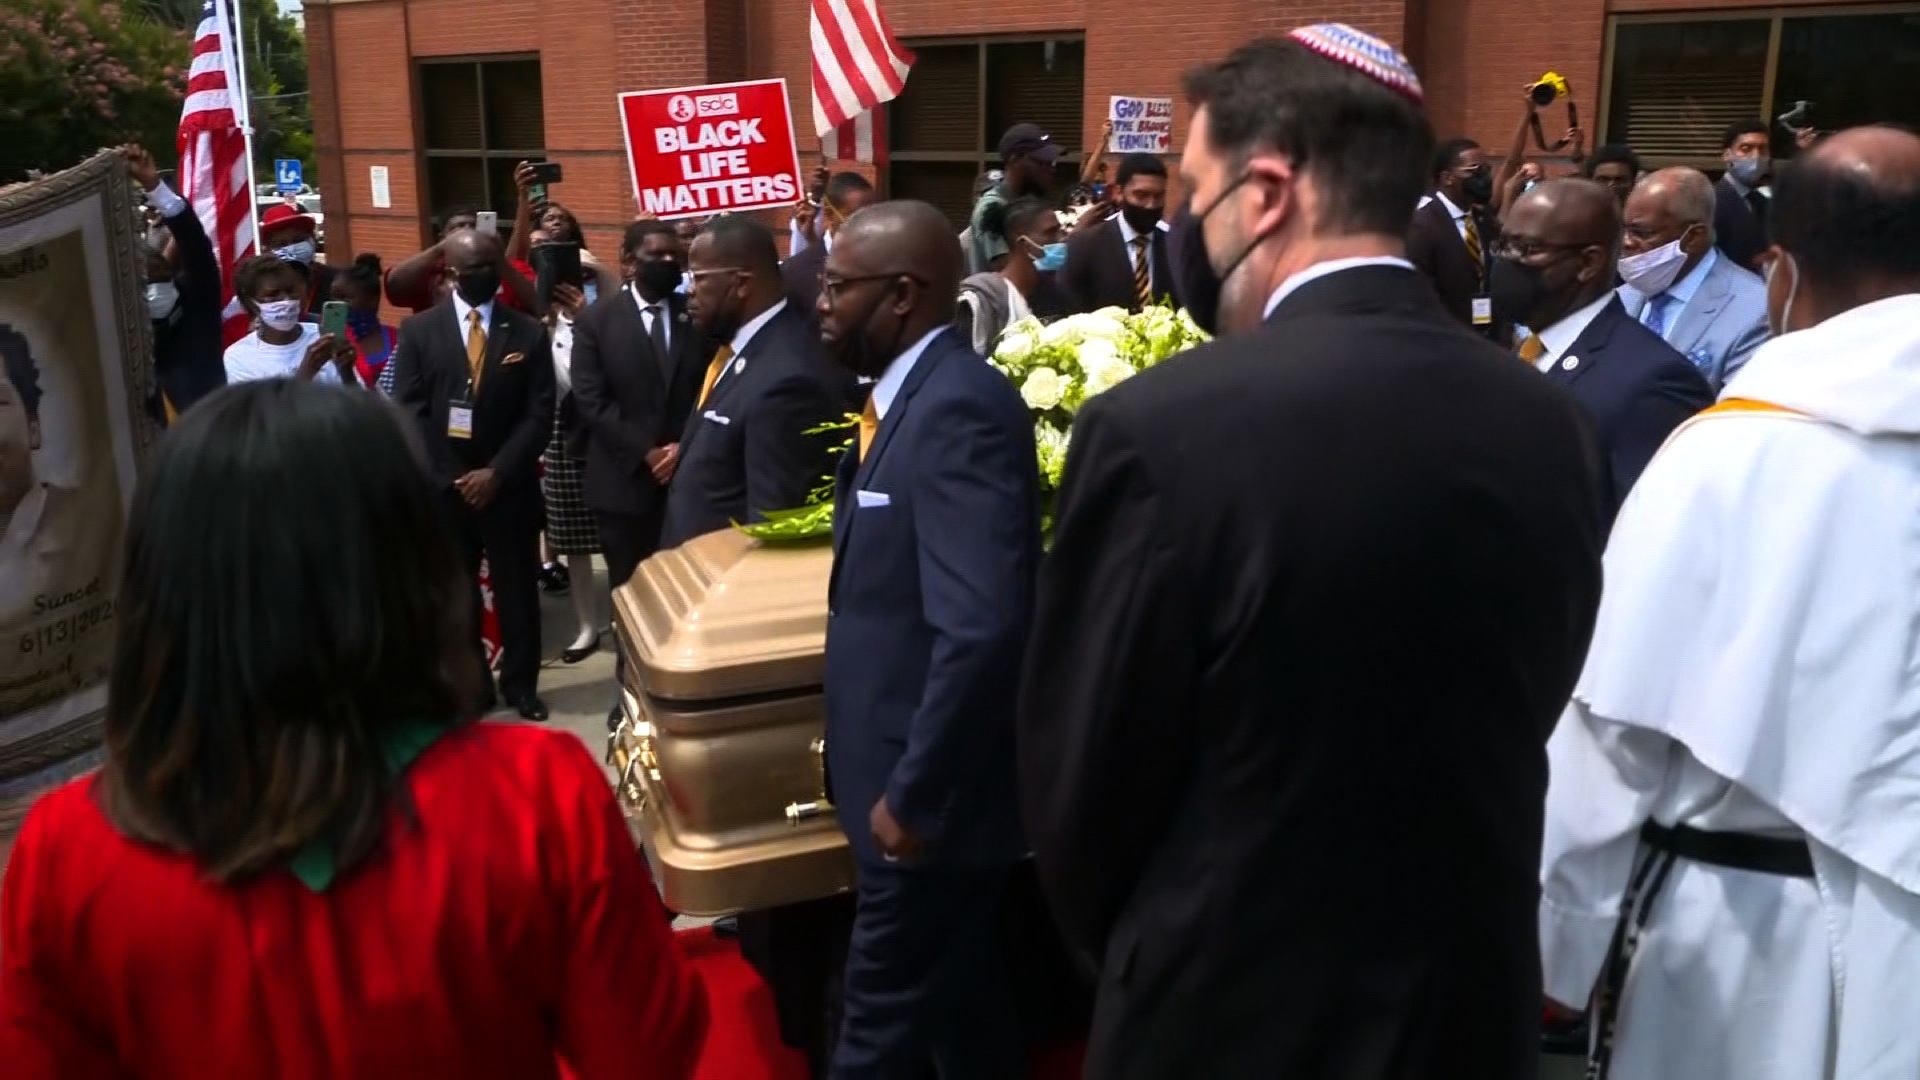 The casket of Rayshard Brooks is carried out of Ebenezer Baptist Church in Atlanta on June 23.